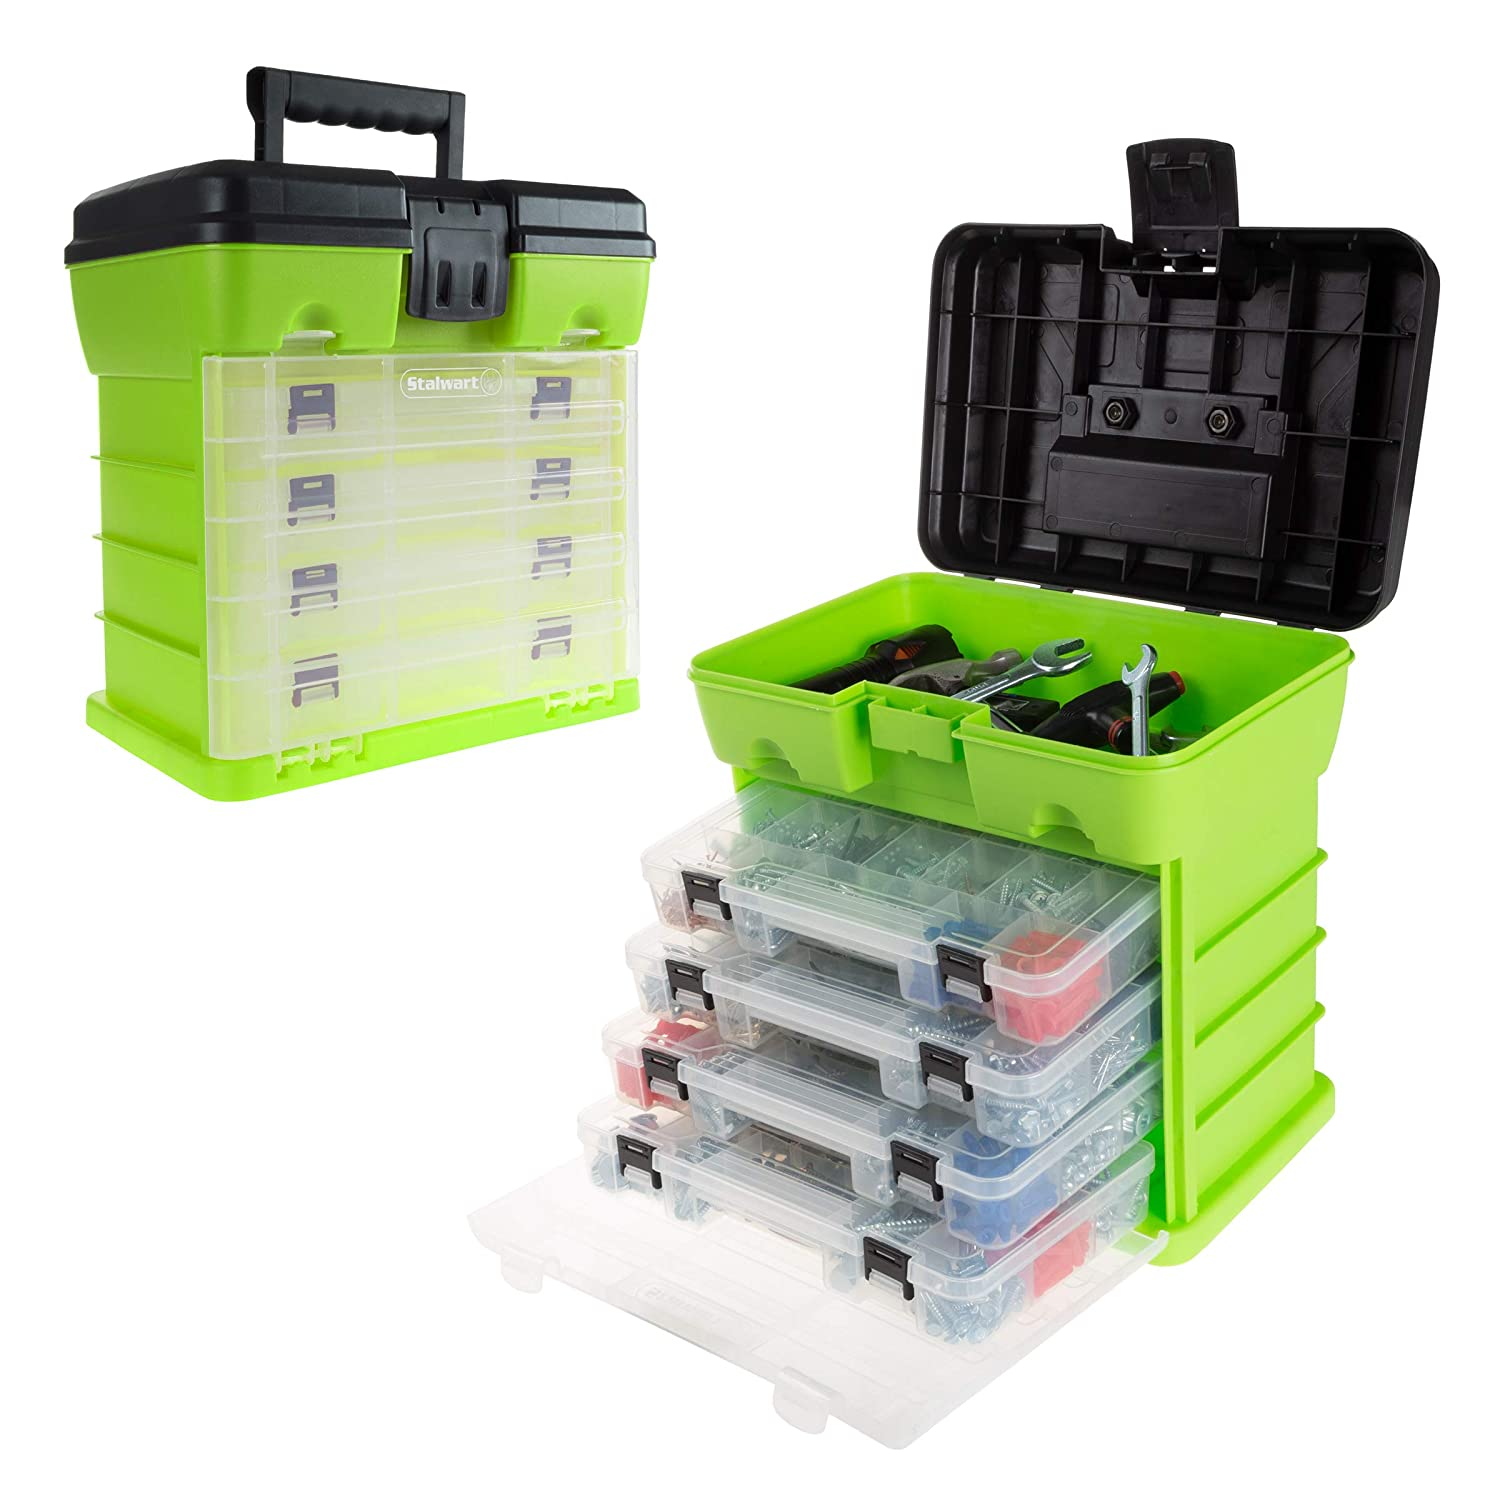 Storage and Tool Box Durable Organizer Utility Box 4 Drawers with 19 Compartments Each for Hardware Fish Tackle Beads and More by Stalwart Green